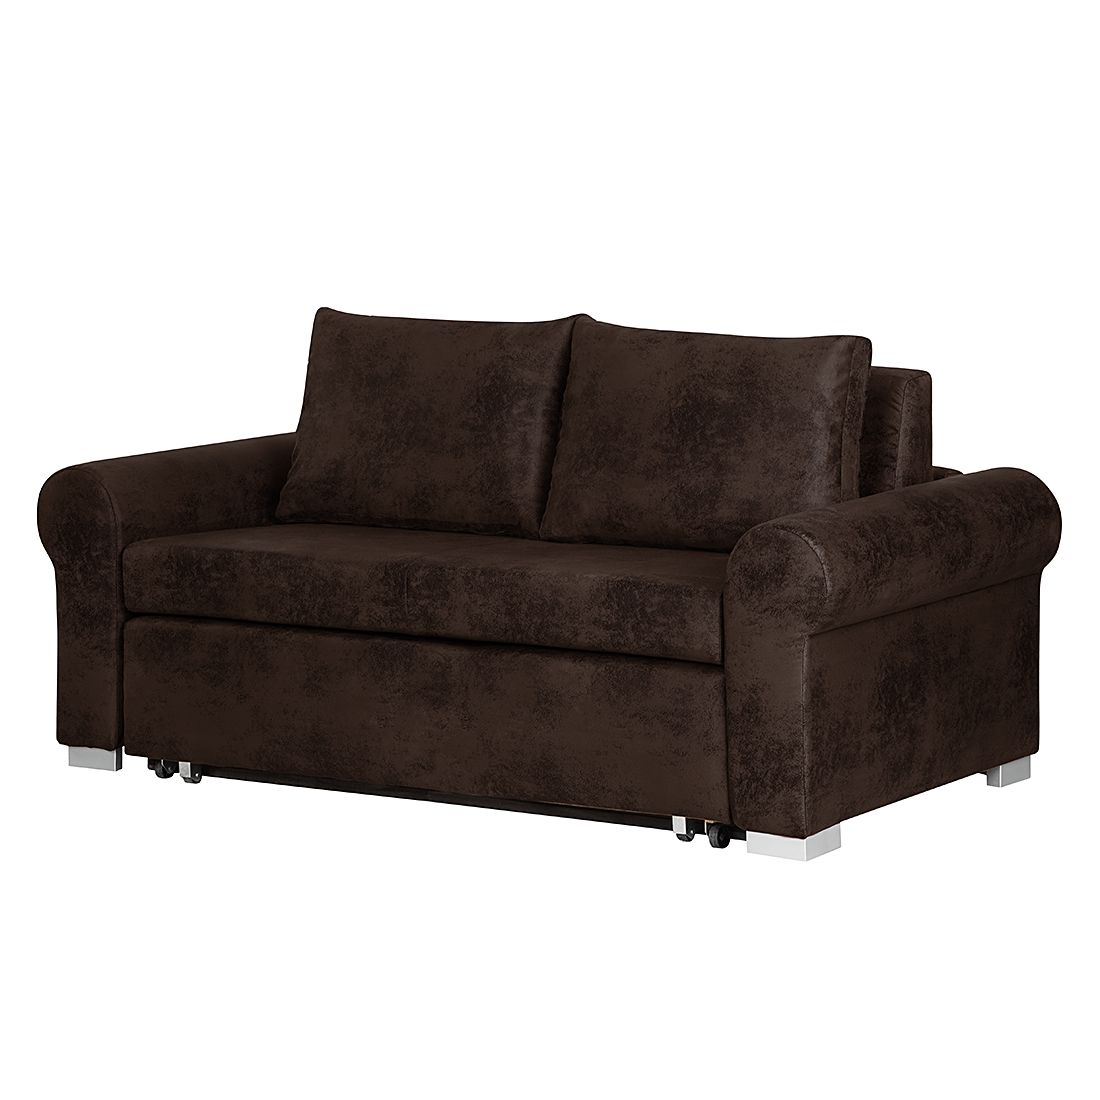 schlafsofa latina country antiklederoptik dunkelbraun 185 cm moebel. Black Bedroom Furniture Sets. Home Design Ideas